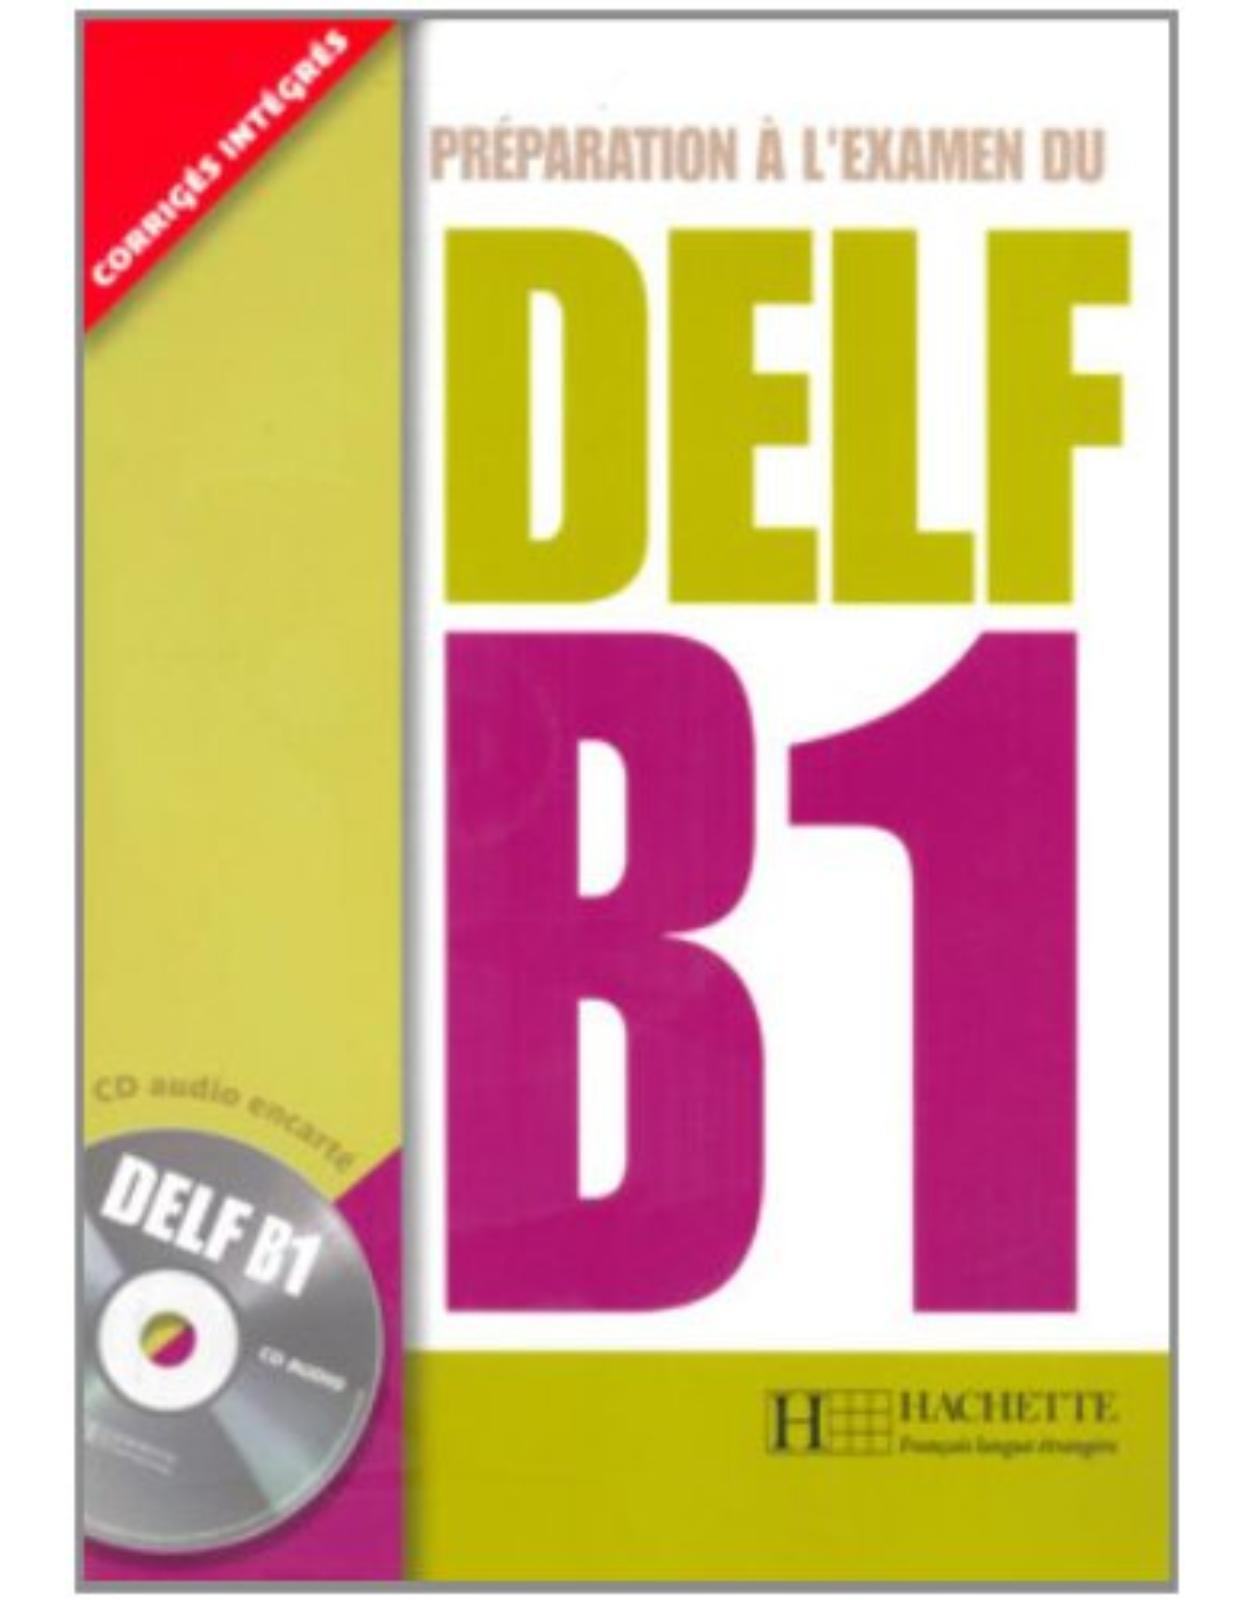 Preparation a l`examen du DELF B1 + CD audio